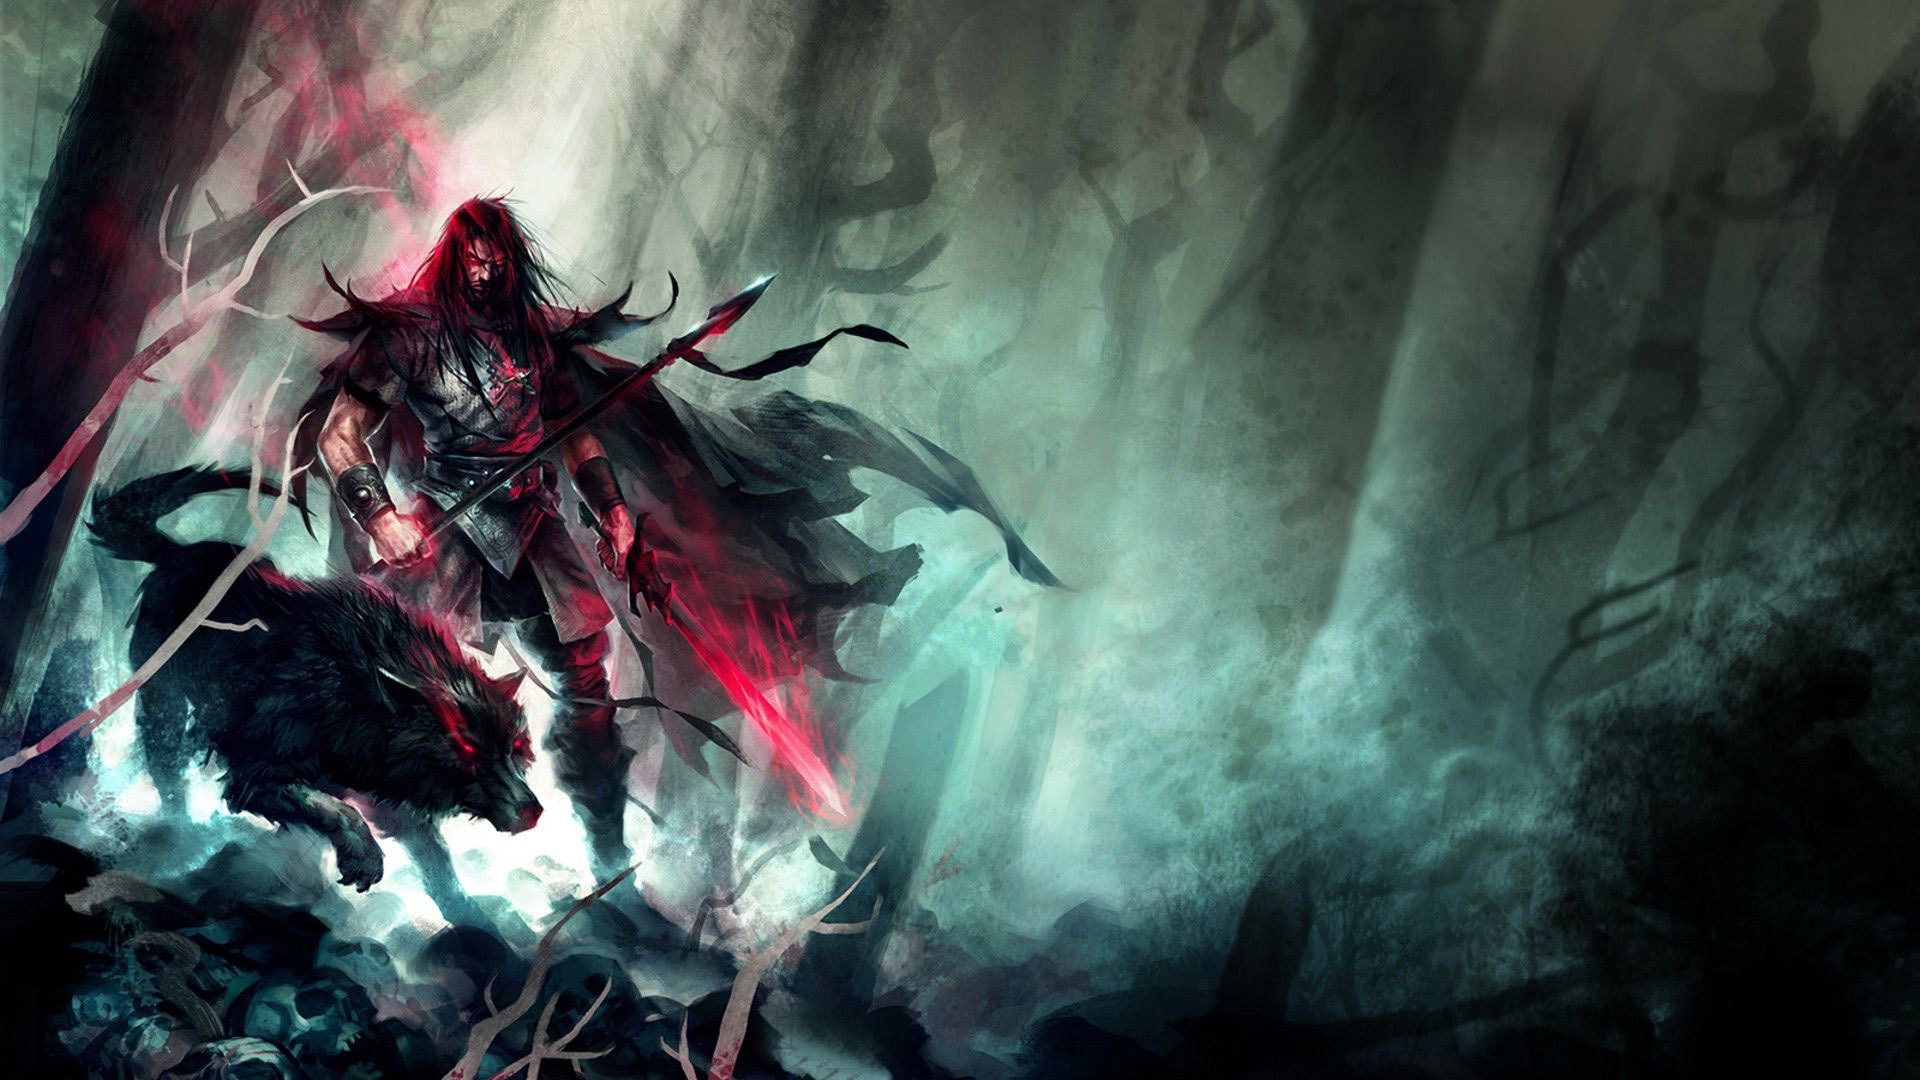 spear-warrior-next-to-black-wolf-fantasy-hd-wallpaper-1920x1080-8835.jpg